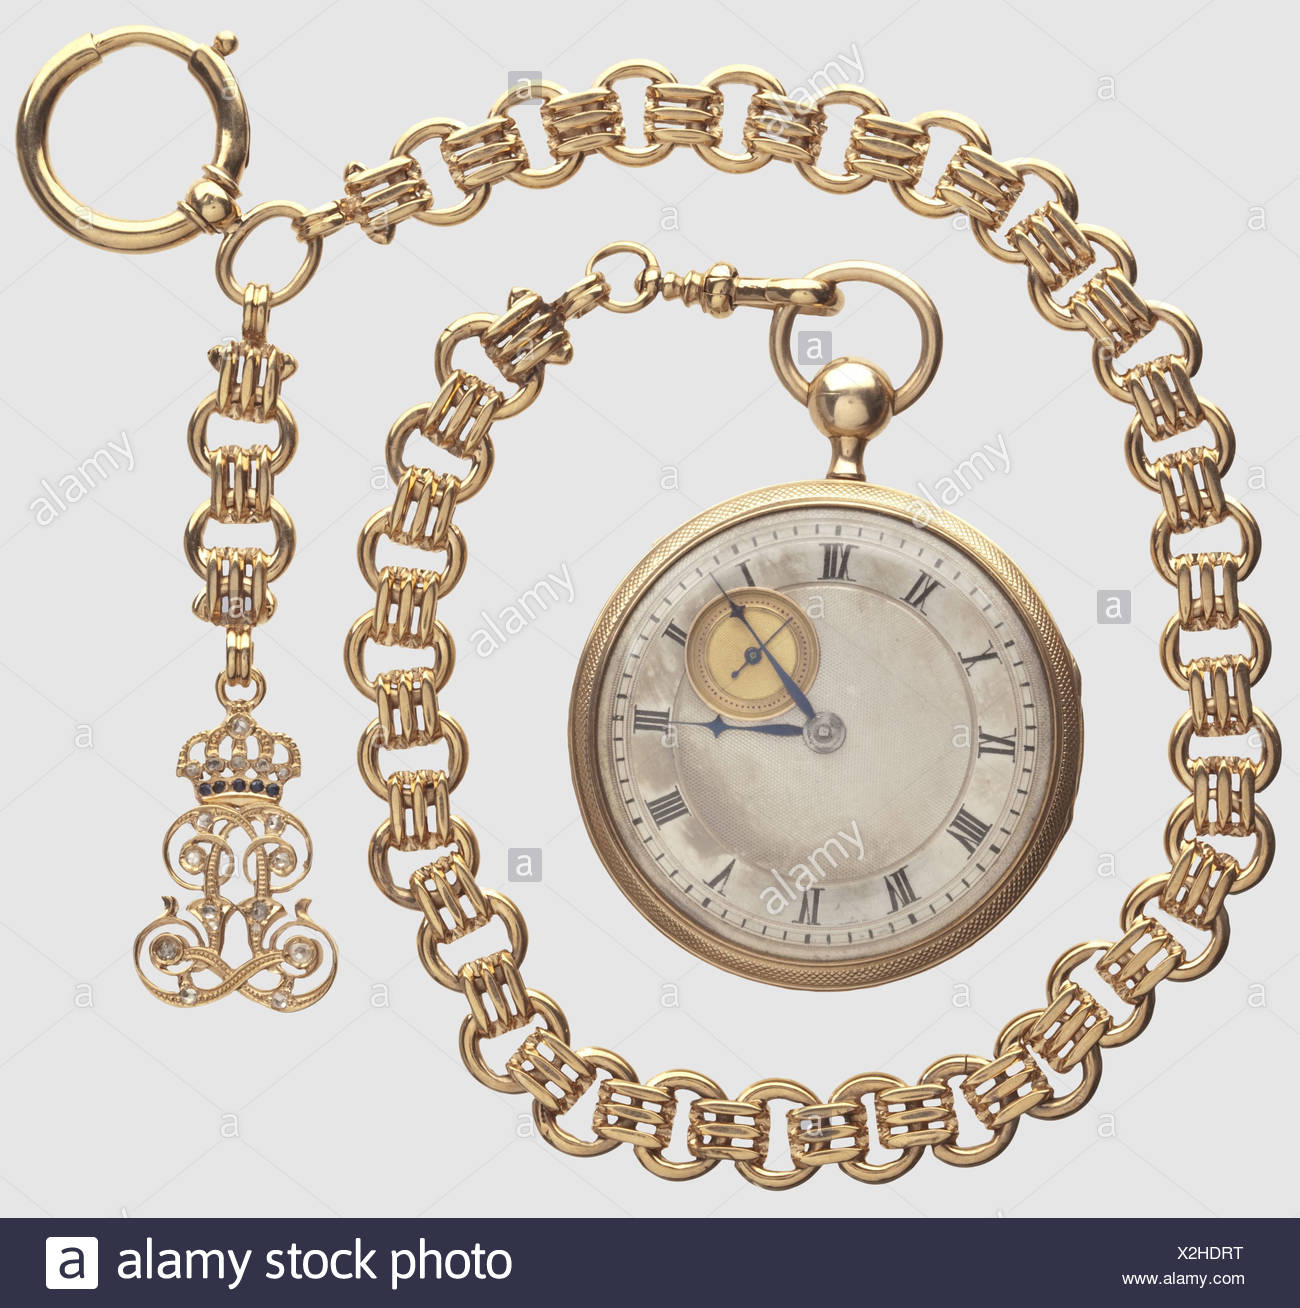 King Maximilian II (1811 - 1864) - King Ludwig II (1845 - 1886), a golden repeater watch with watch ch historic, historical, 19th century, Bavaria, Bavarian, German, Germany, Southern Germany, the South of Germany, Royal, object, objects, stills, clipping, cut out, cut-out, cut-outs, jewellery, jewelry, Additional-Rights-Clearences-NA - Stock Image